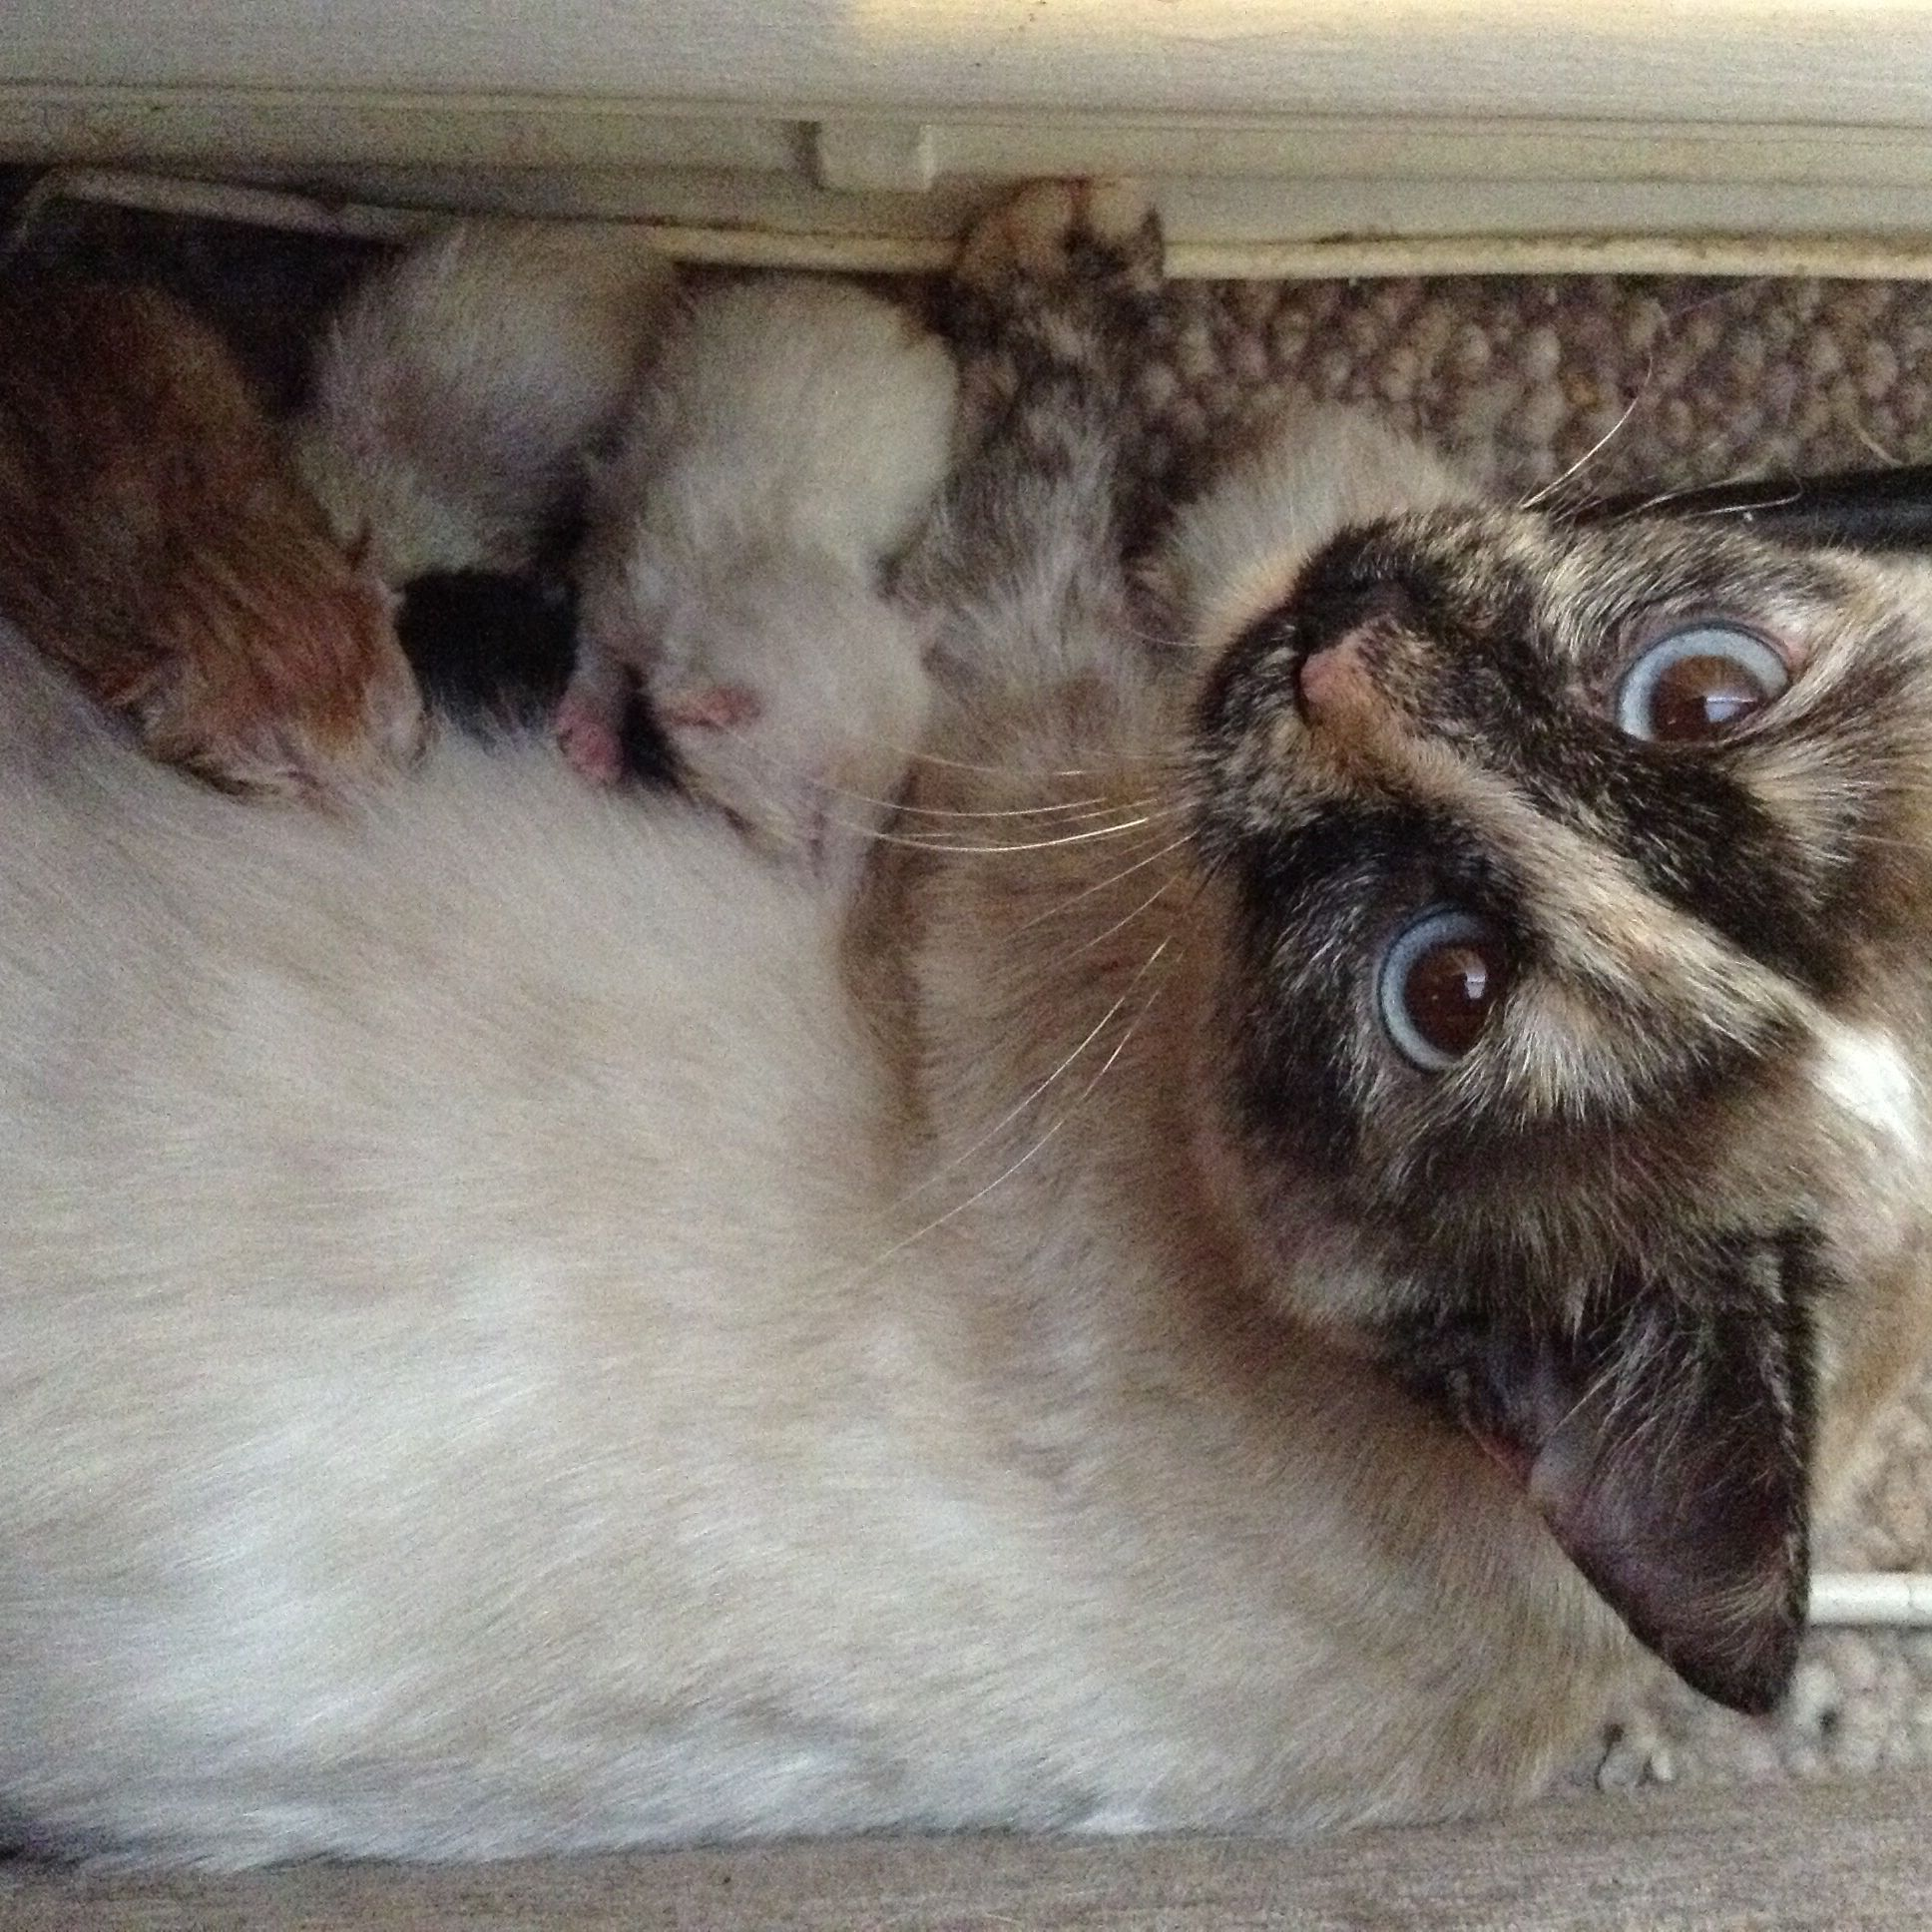 Our beautiful Storm & her new born kittens.